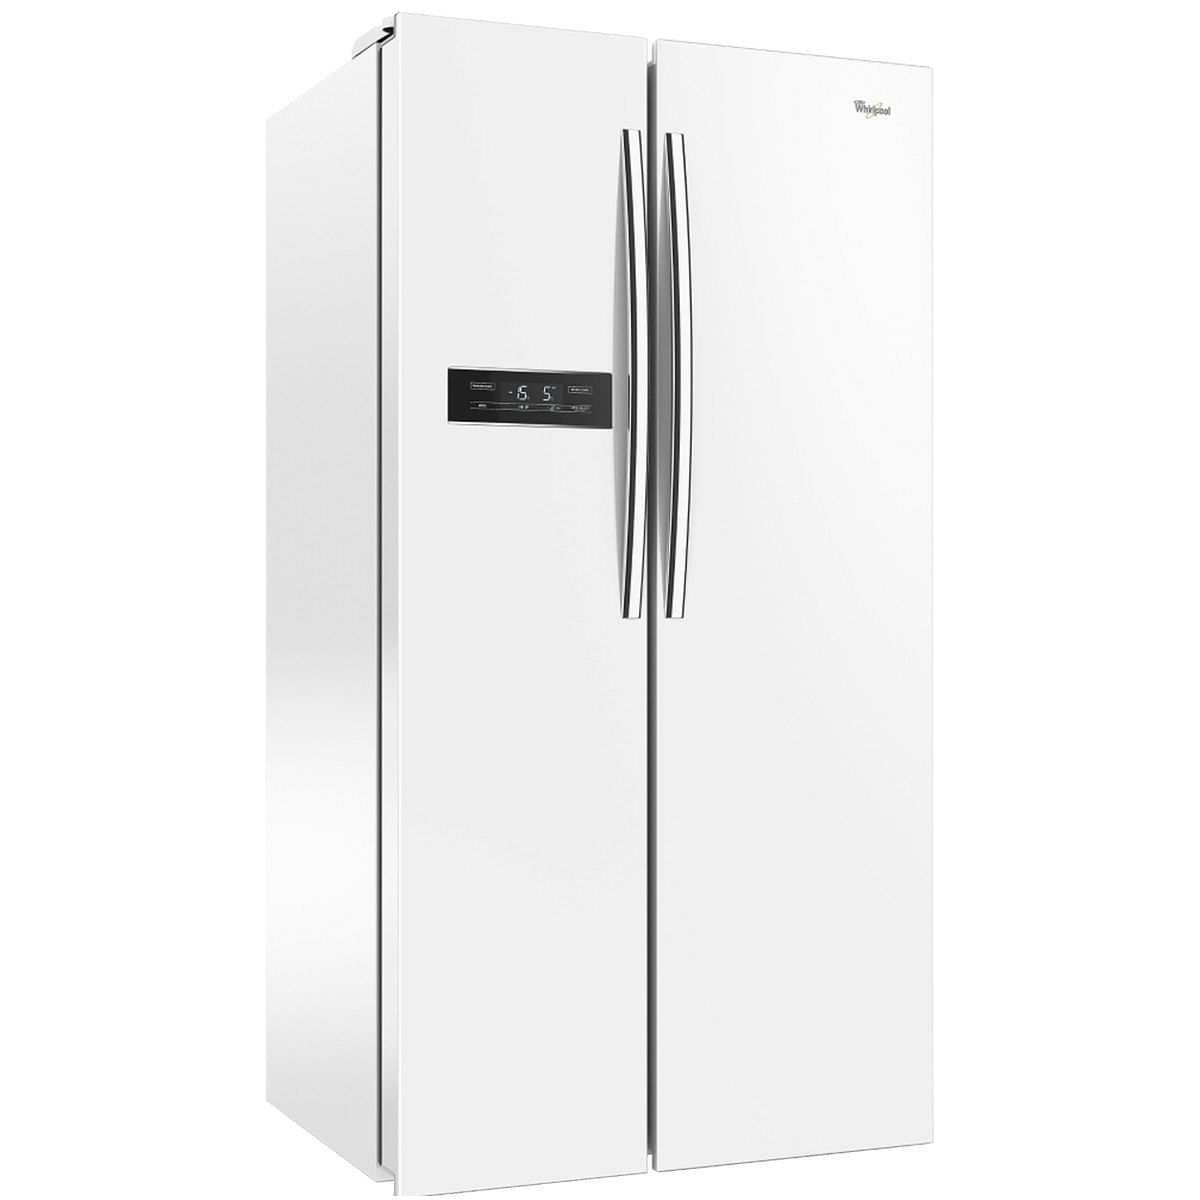 Whirlpool 19 Cft White Side By Side Refrigerator Touch Panel Easy Ice Tempered Glass Shelves No Dispenser Standard Distributors Limited